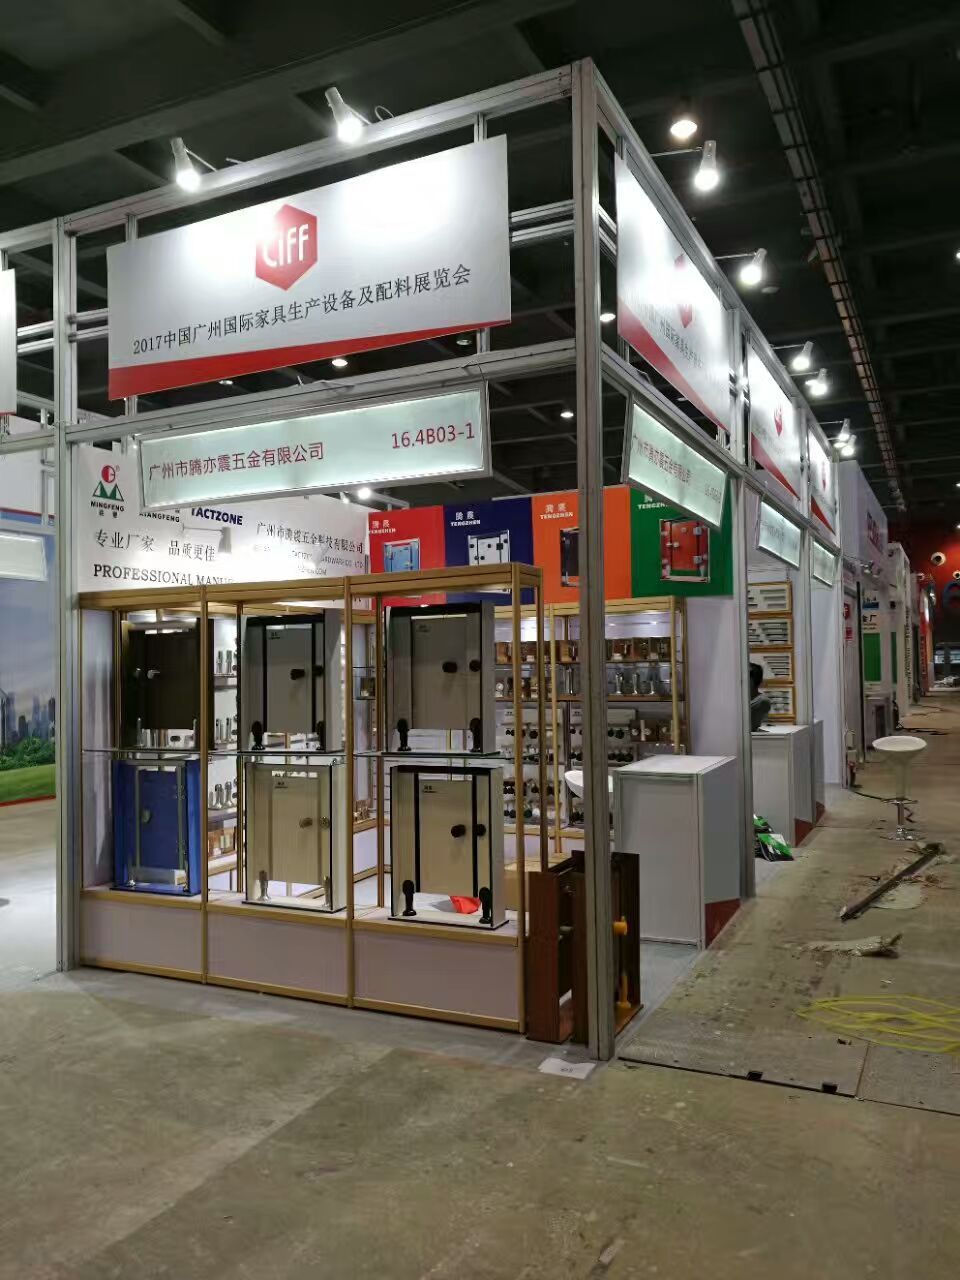 the 39th China International Furniture Fair (Guangzhou)